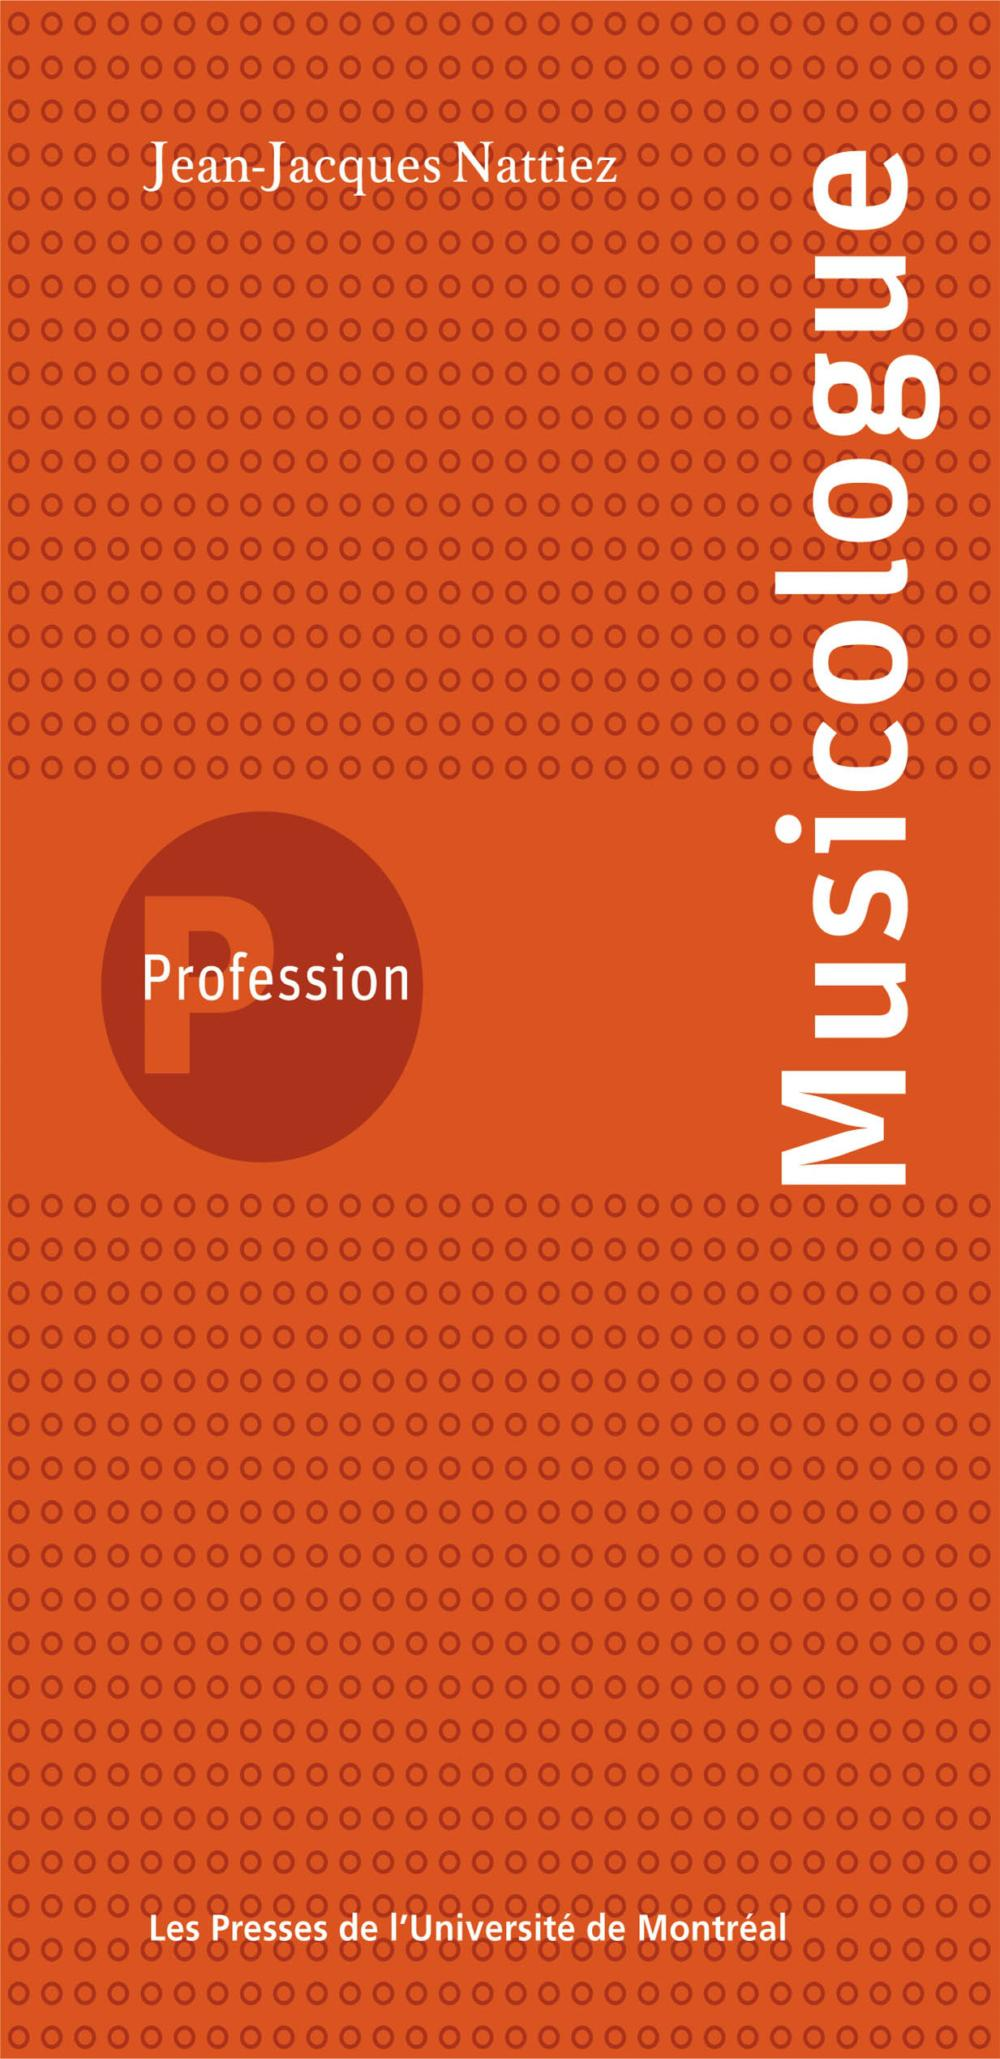 PROFESSION MUSICOLOGUE